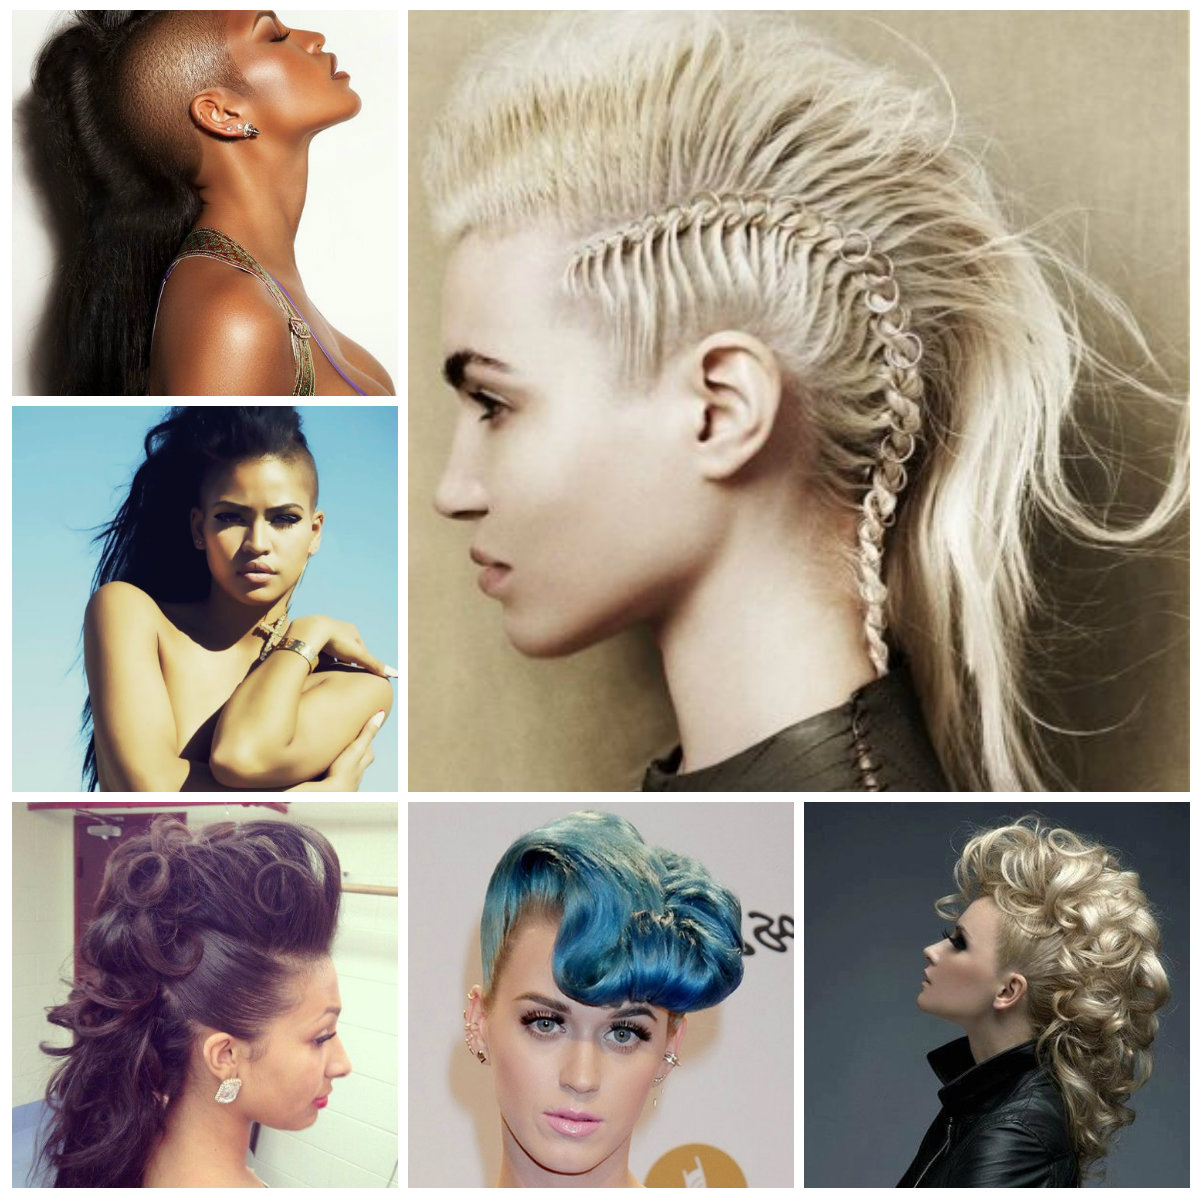 2017 Mohawk Hairstyles With An Undershave For Girls Intended For Mohawk Hairstyle For Long Hair – Trendy Hairstyles 2019 For Long (View 2 of 20)